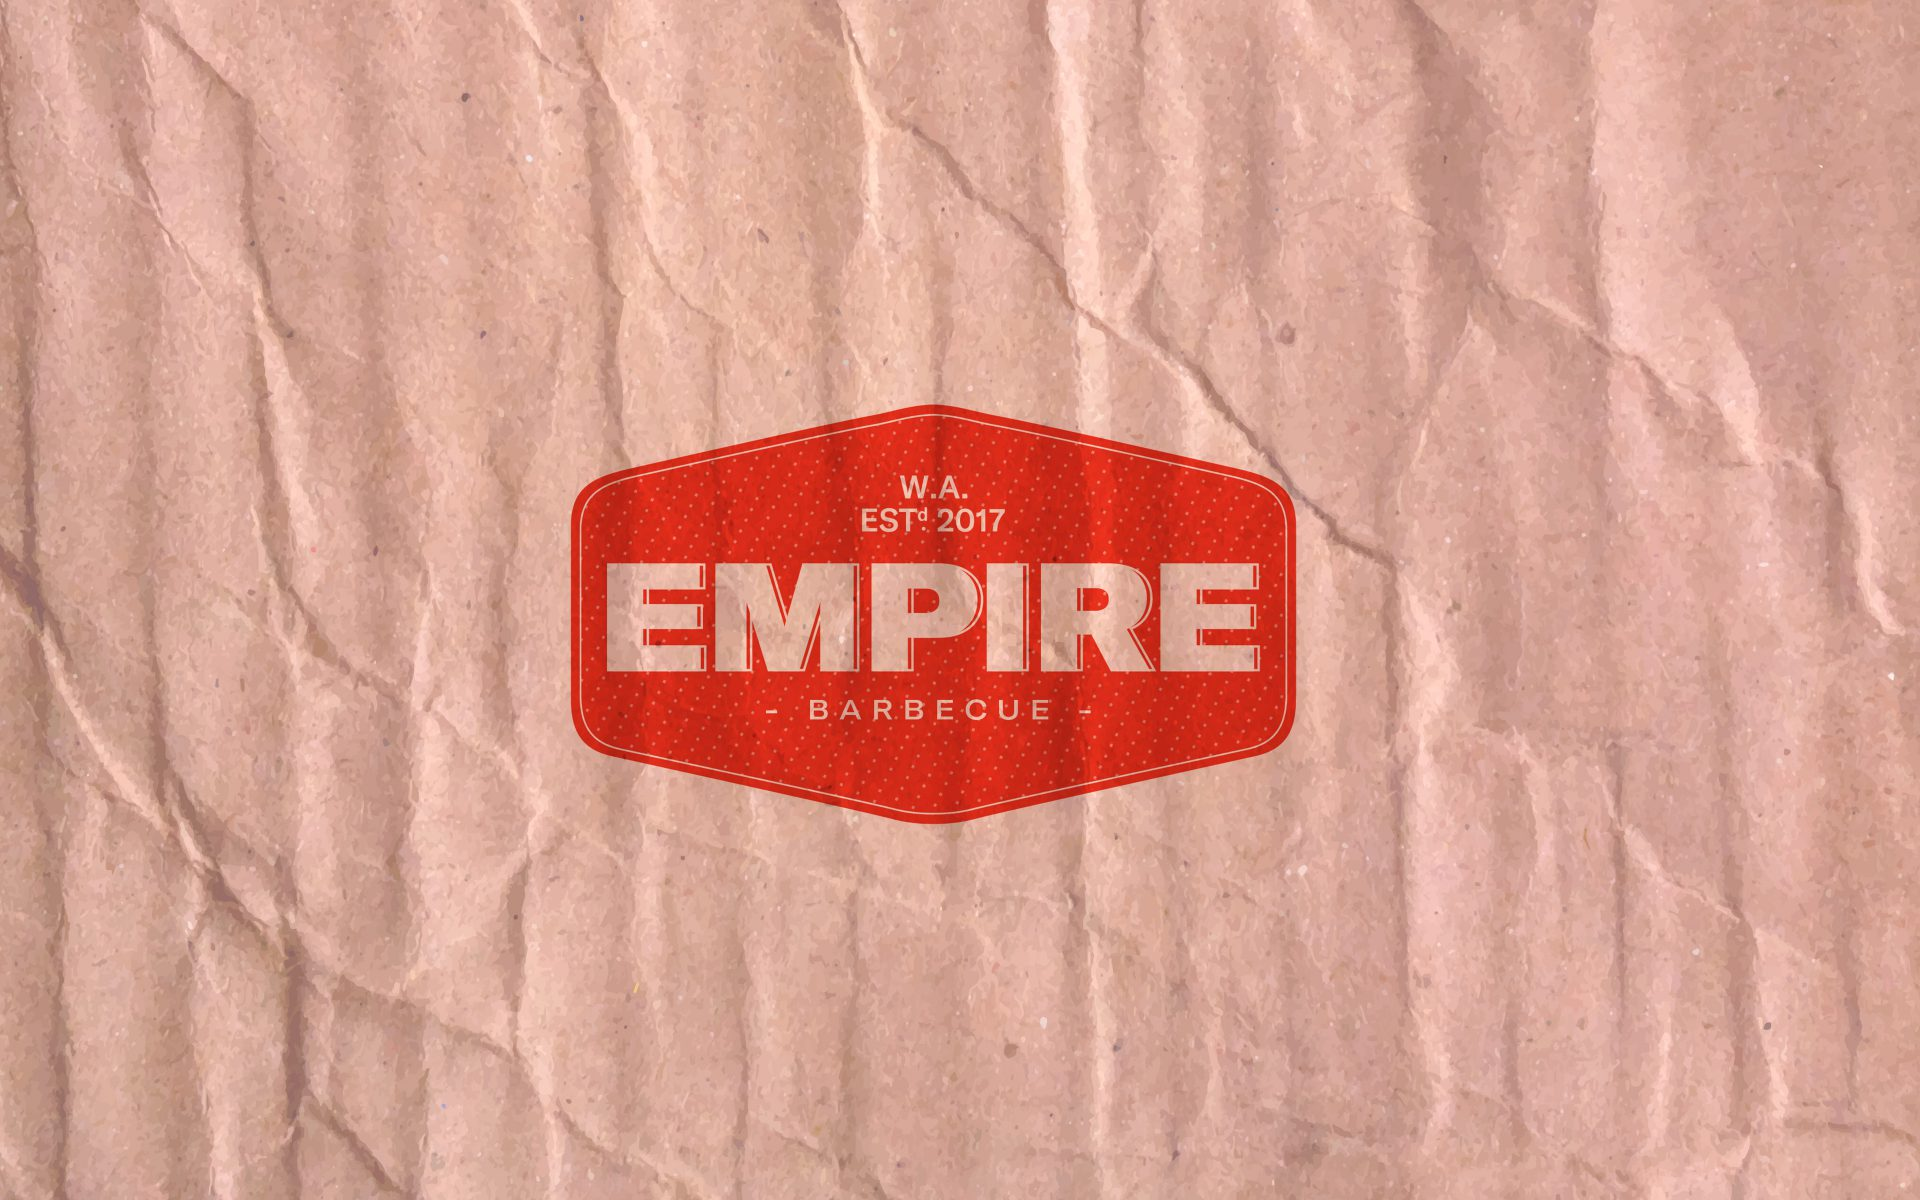 Empire BBQ brand logo red stamp on recycled brown paper